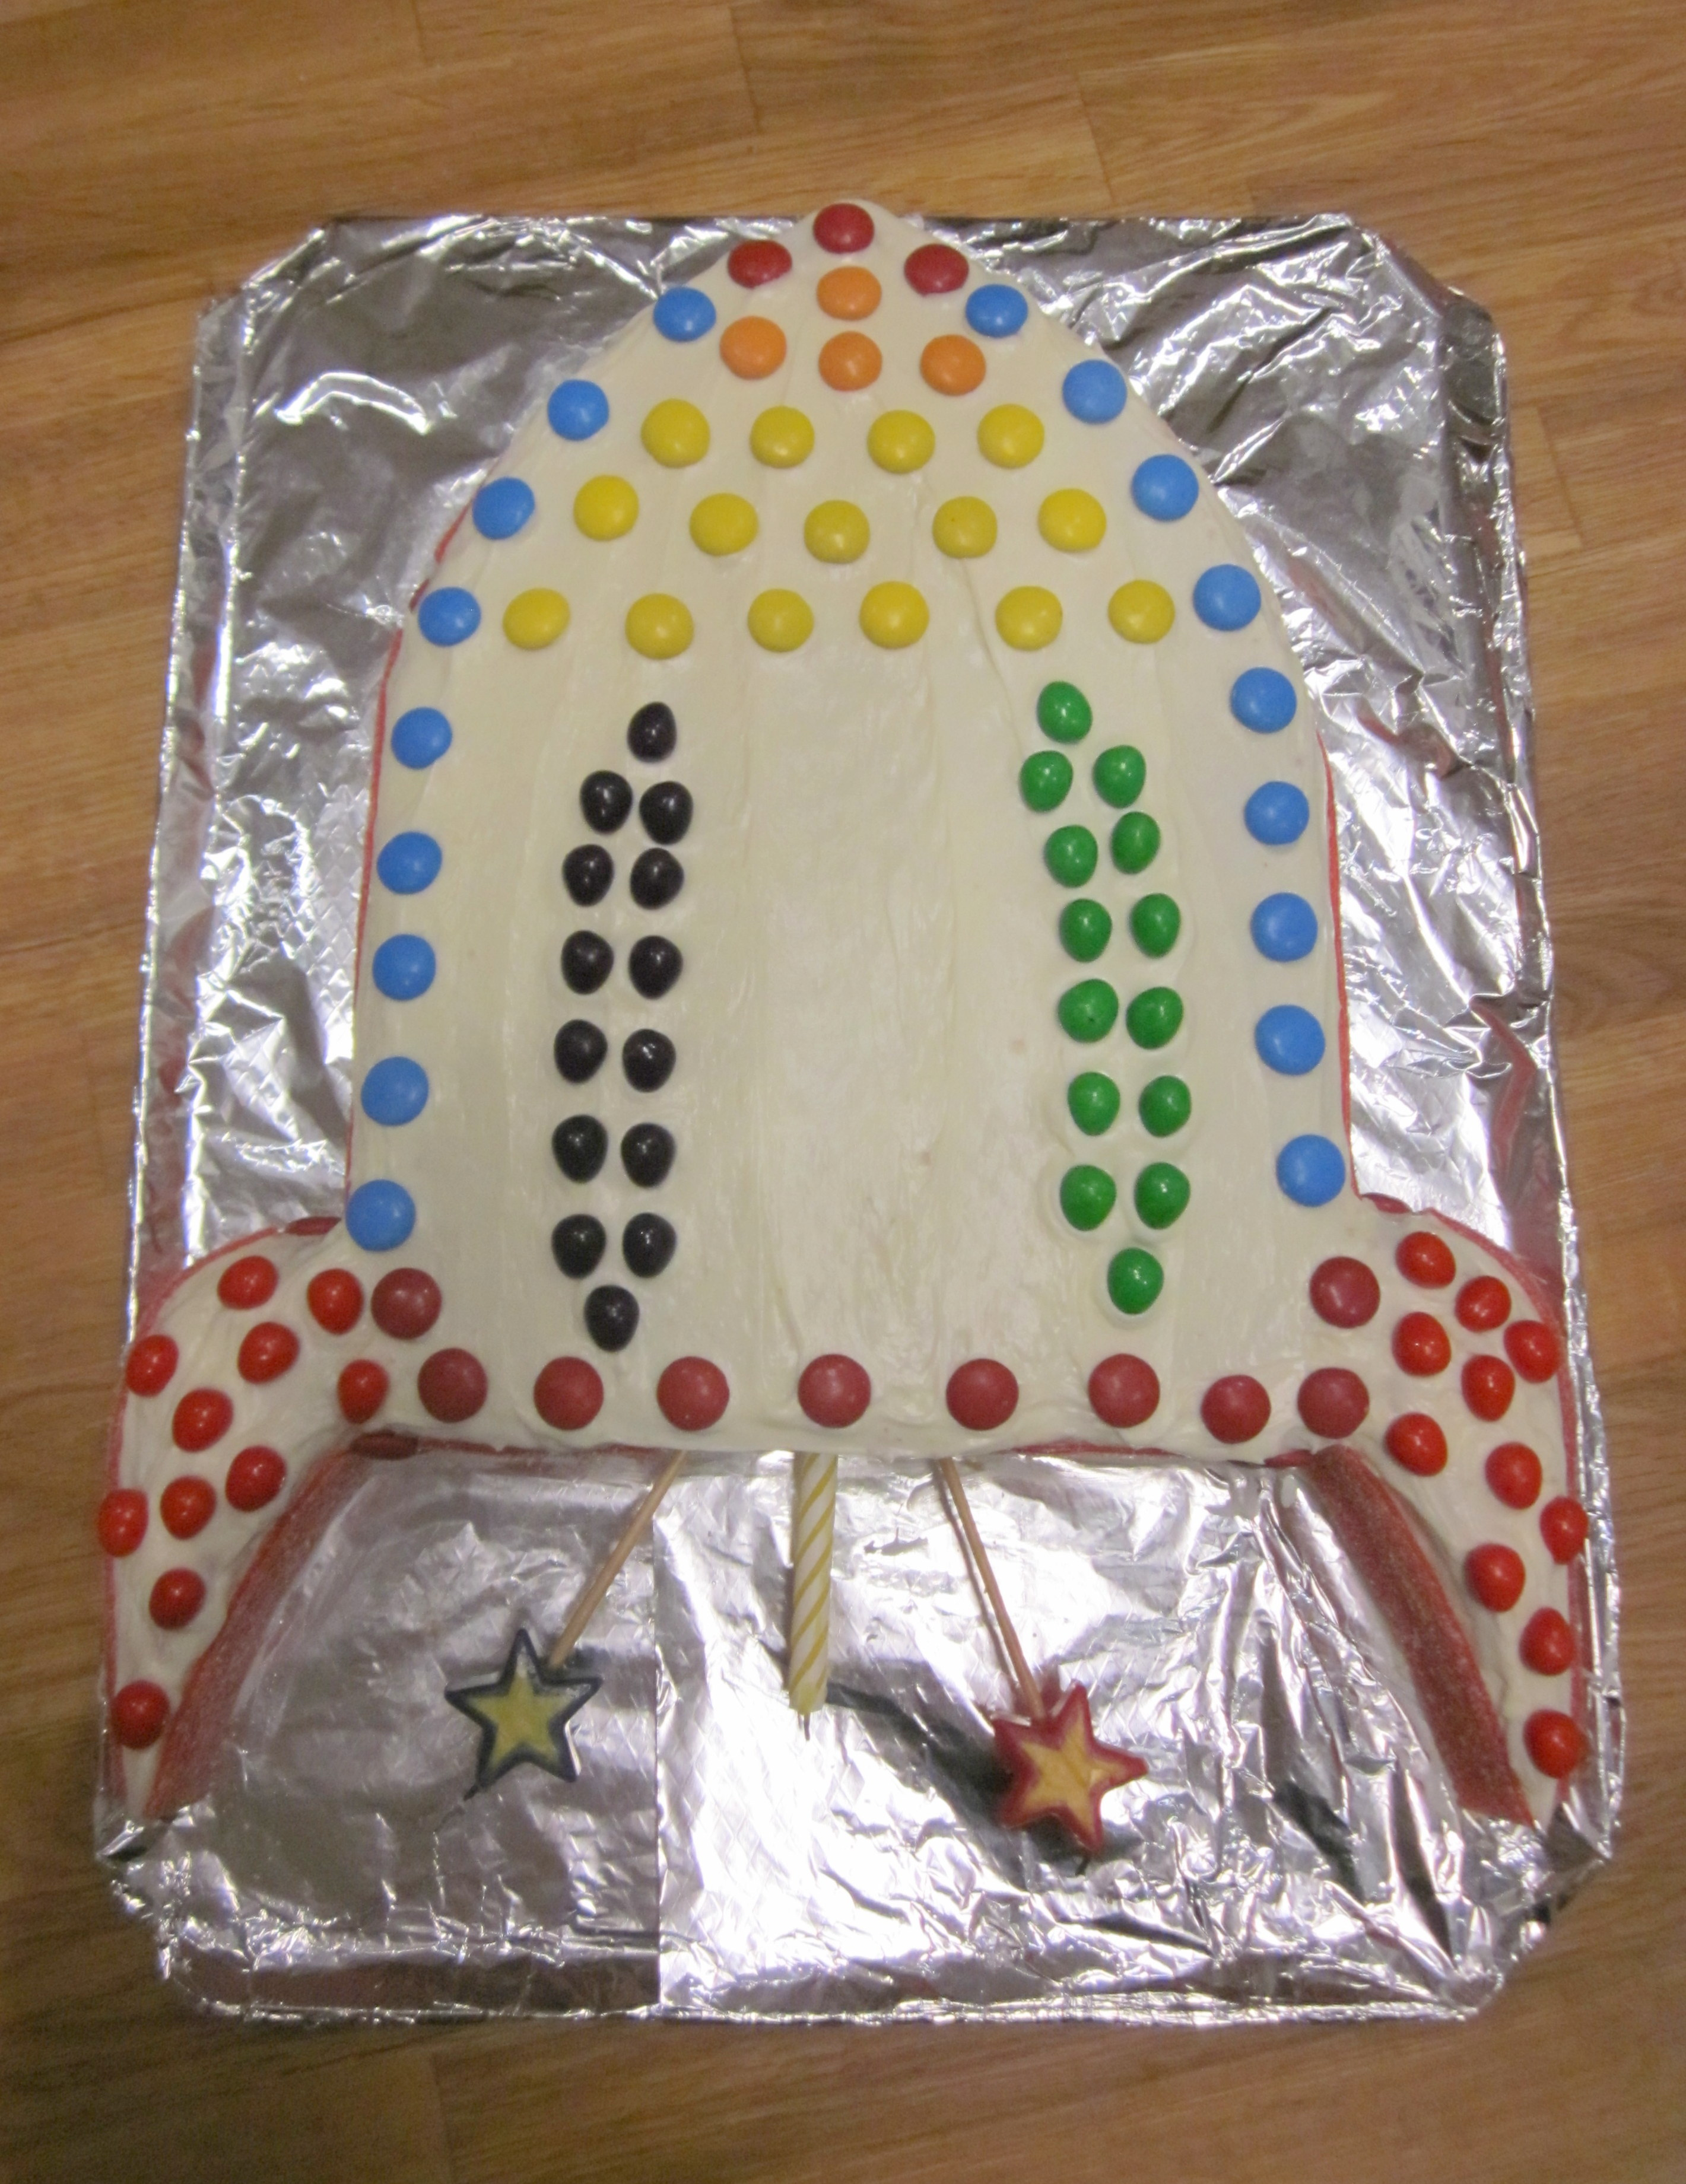 Can You Use Regular Sparklers On A Cake